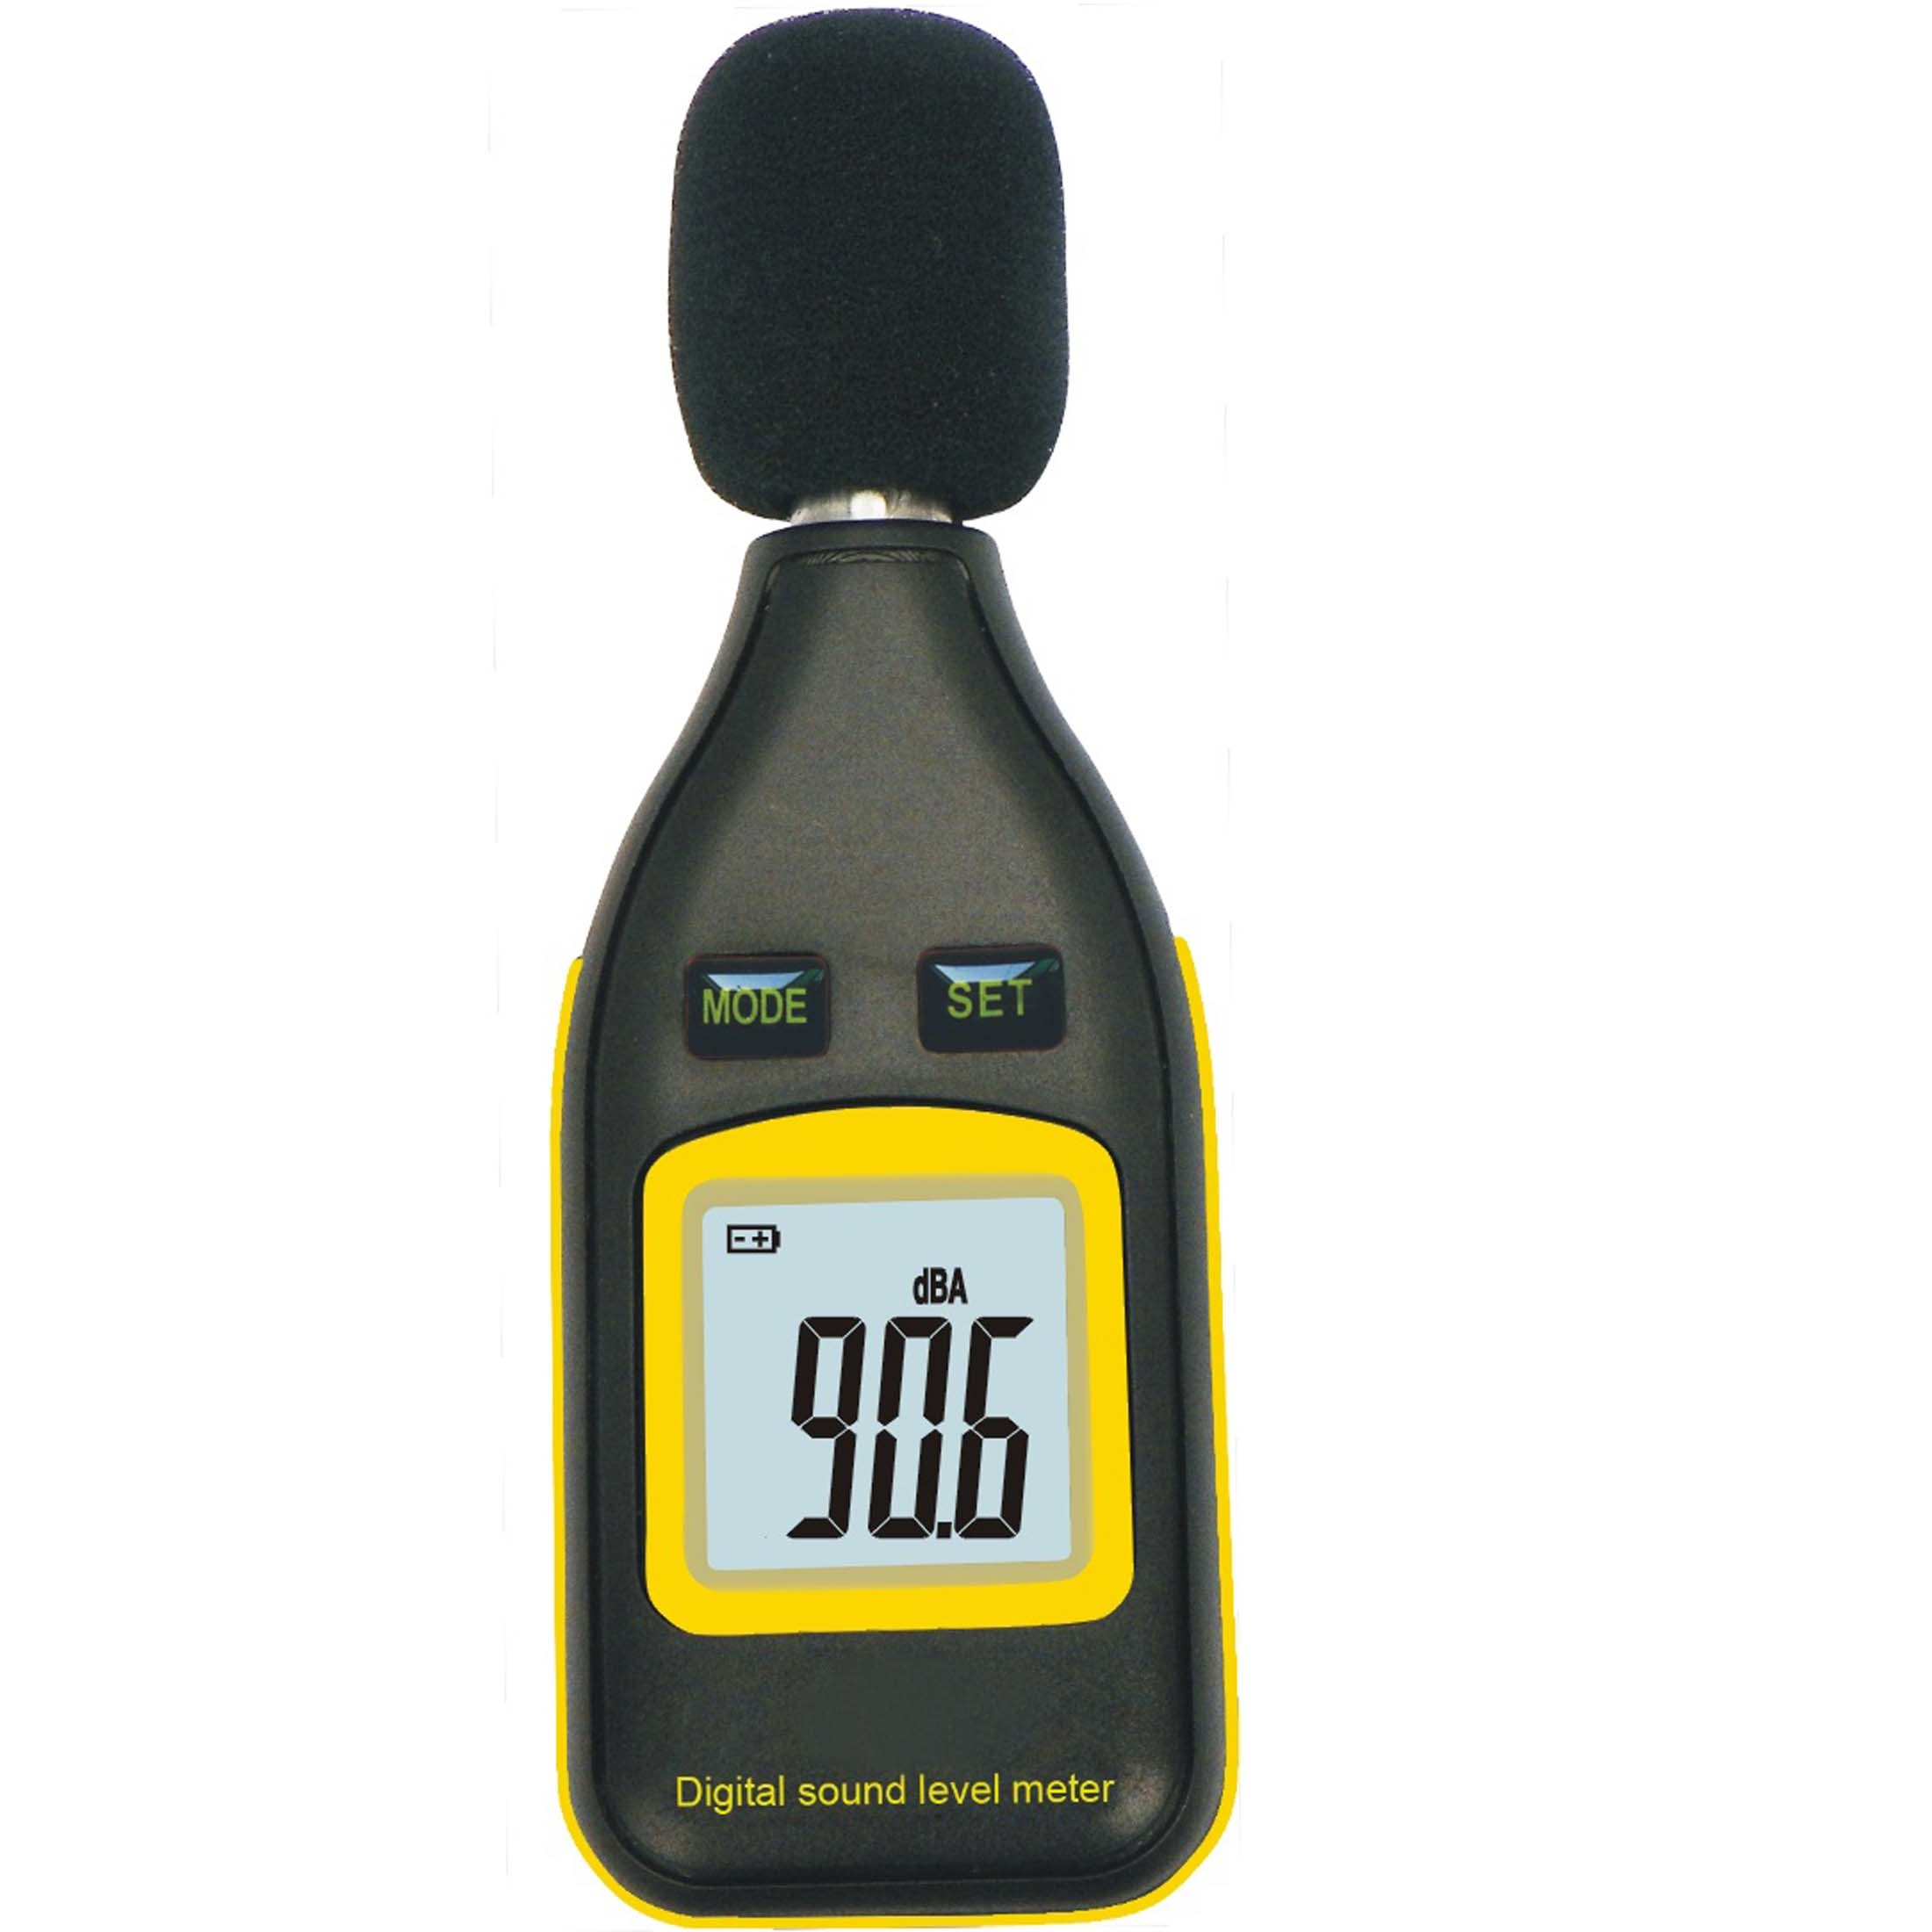 Sound Level Meter : China calibration analog mini digital sound level meter s